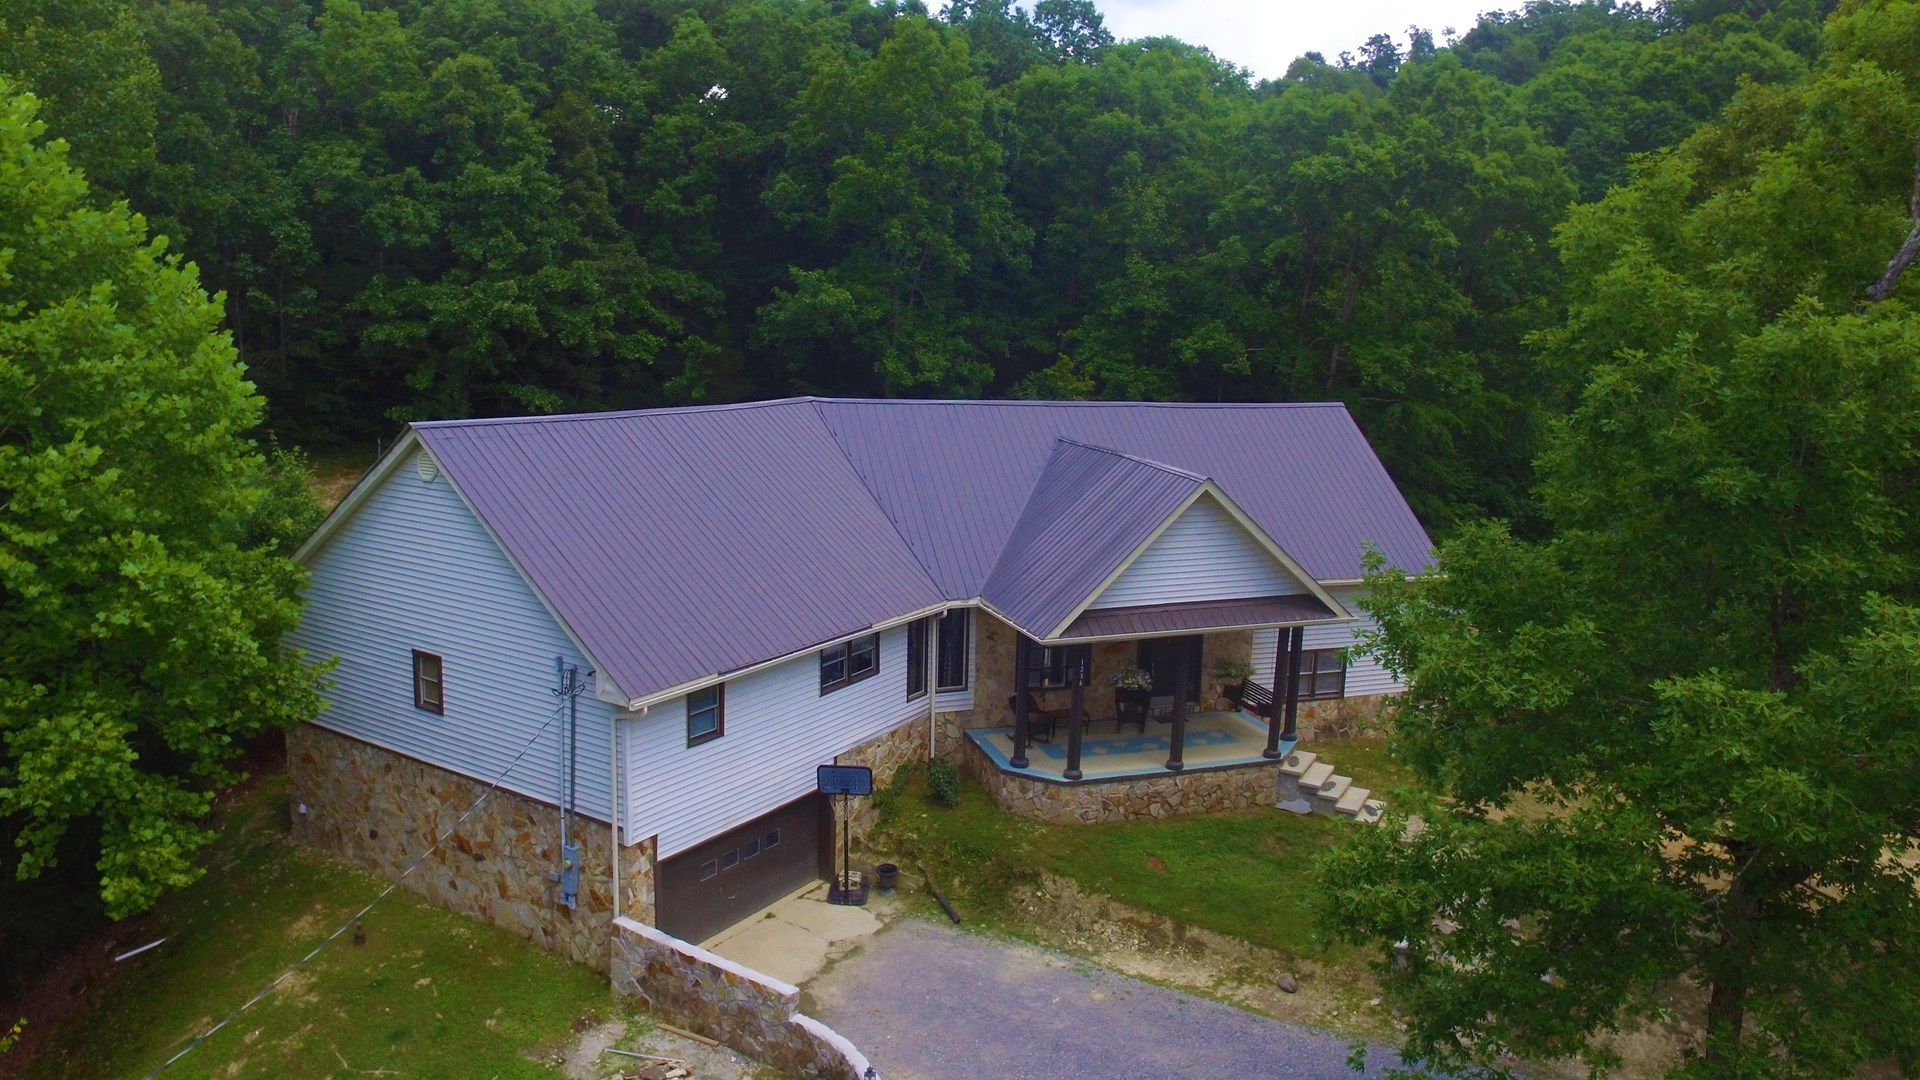 5 BEDROOM 4 BATH COUNTRY HOME-2 PONDS-5 ACRES - CENTRAL KY.